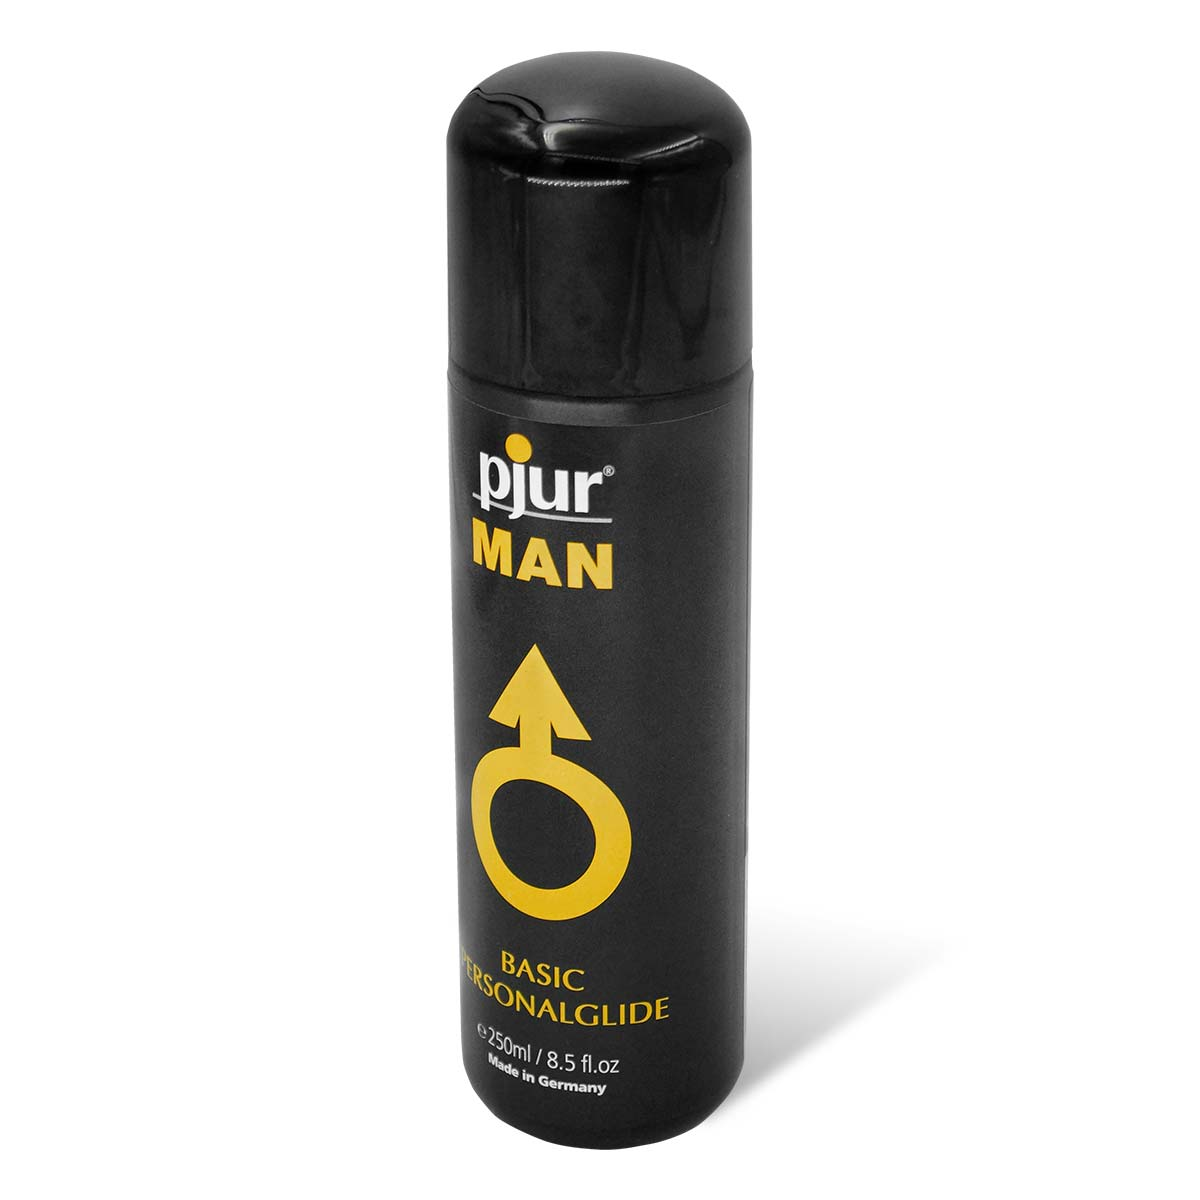 pjur MAN BASIC PERSONALGLIDE 250ml Silicone-based Lubricant